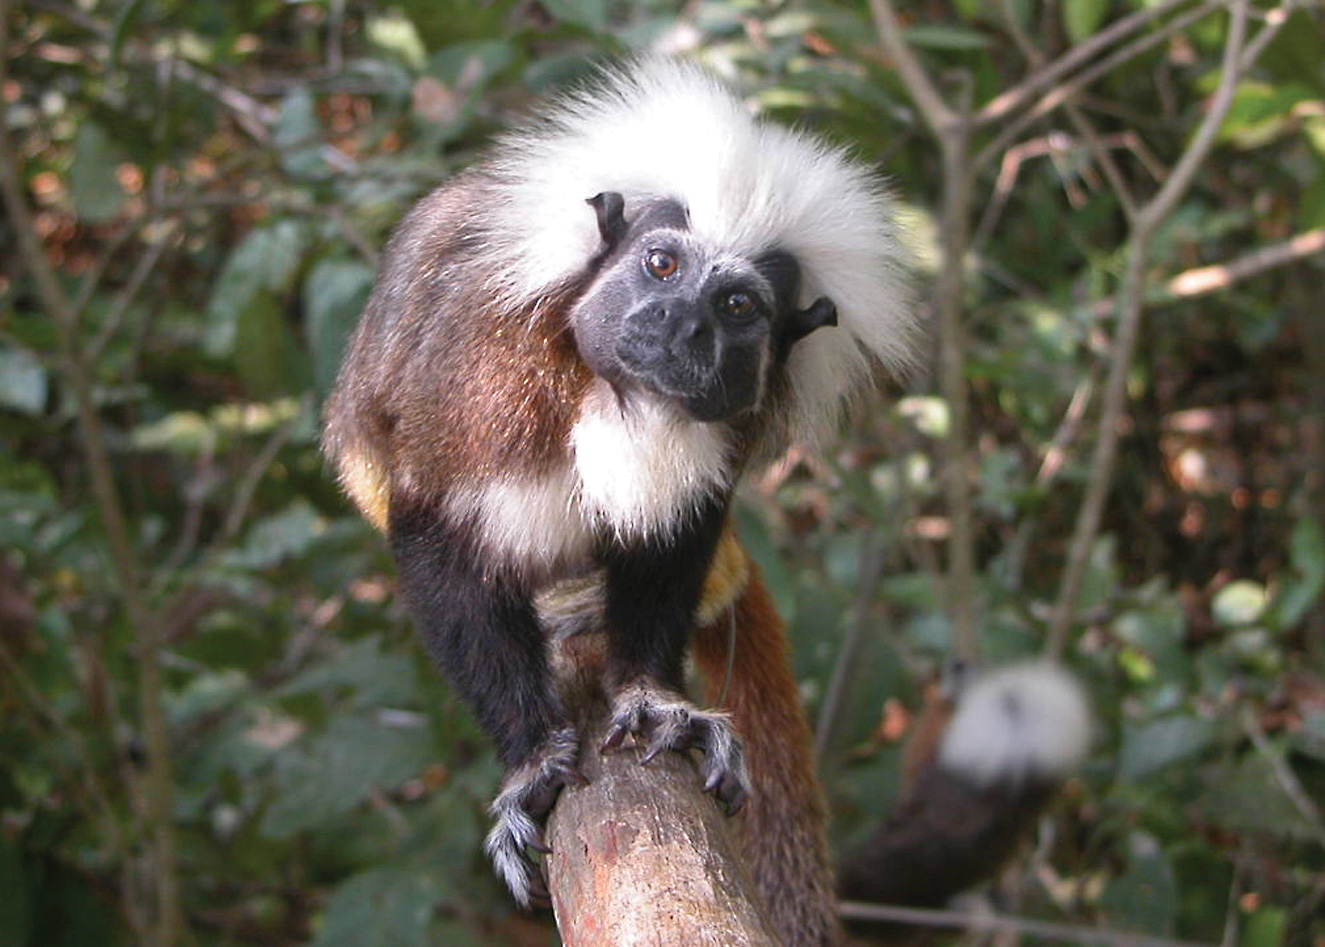 Increasing plastic debris threatens Proyecto Tití's flagship species, the cotton-top tamarin (Saguinus oedipus), as well as sea turtles. © Proyecto Tití